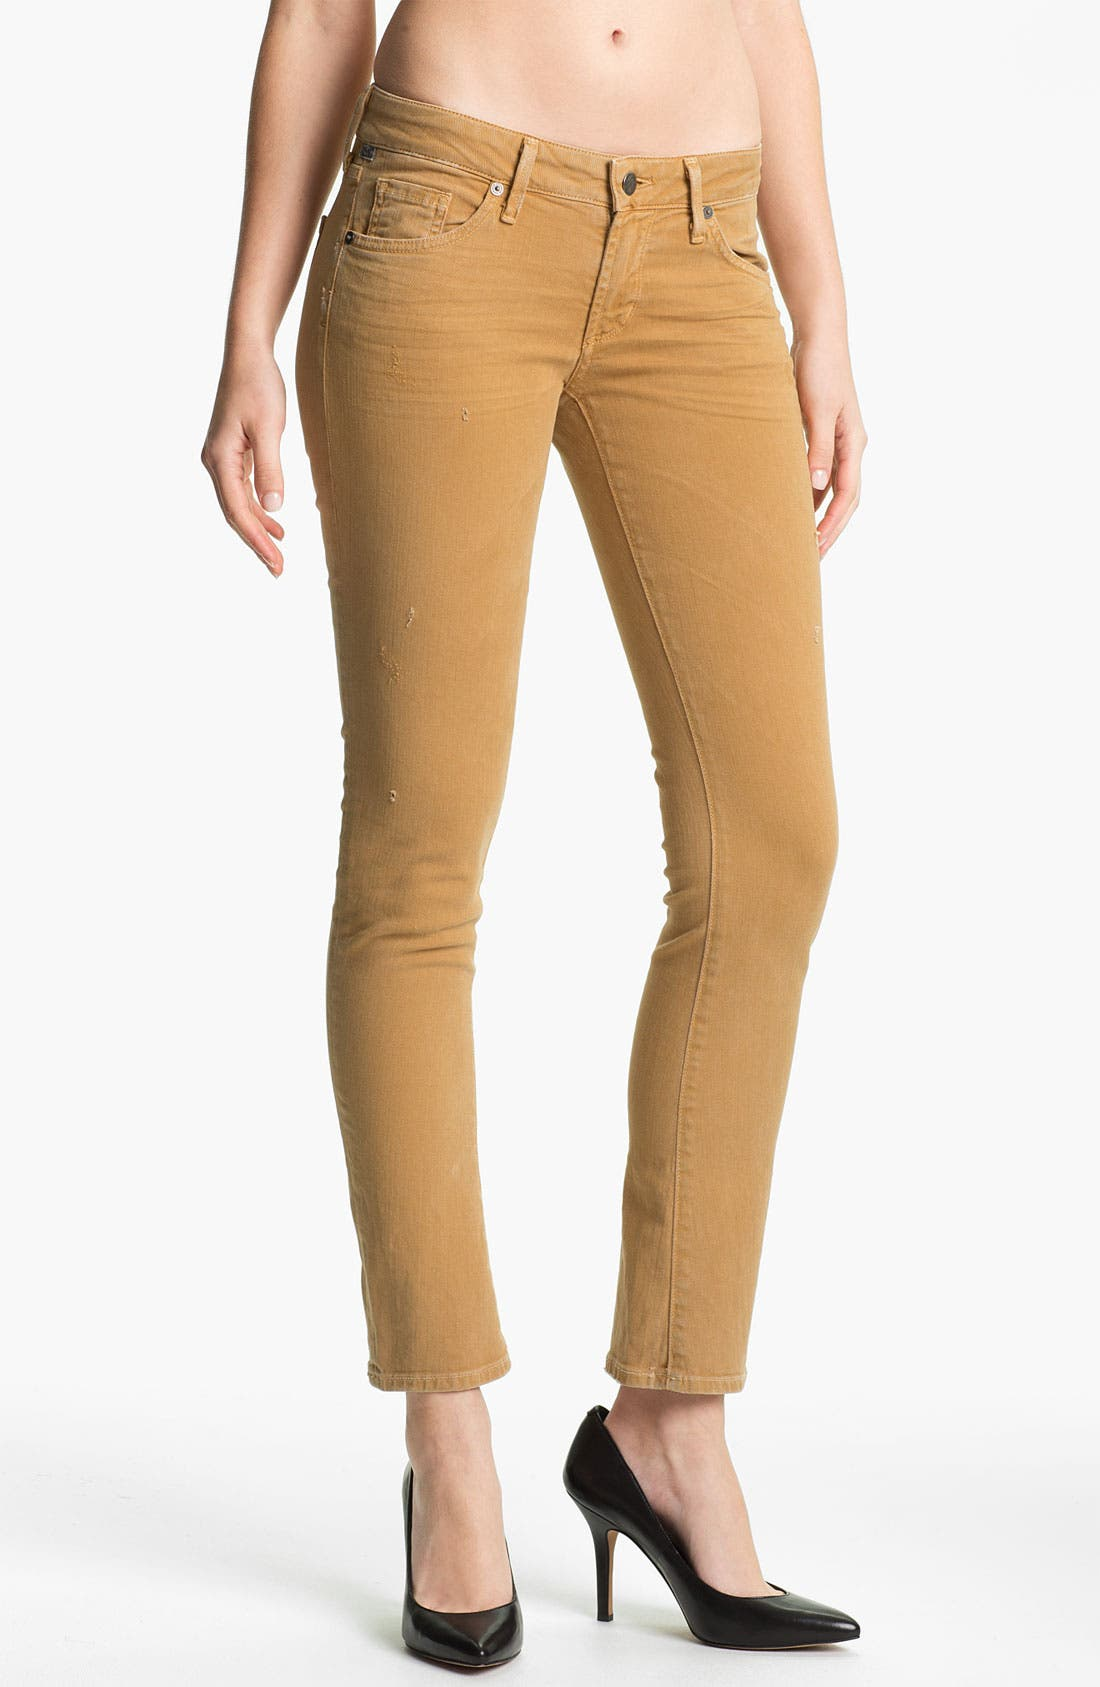 Alternate Image 1 Selected - Citizens of Humanity 'Racer' Crop Skinny Jeans (Biscuit)